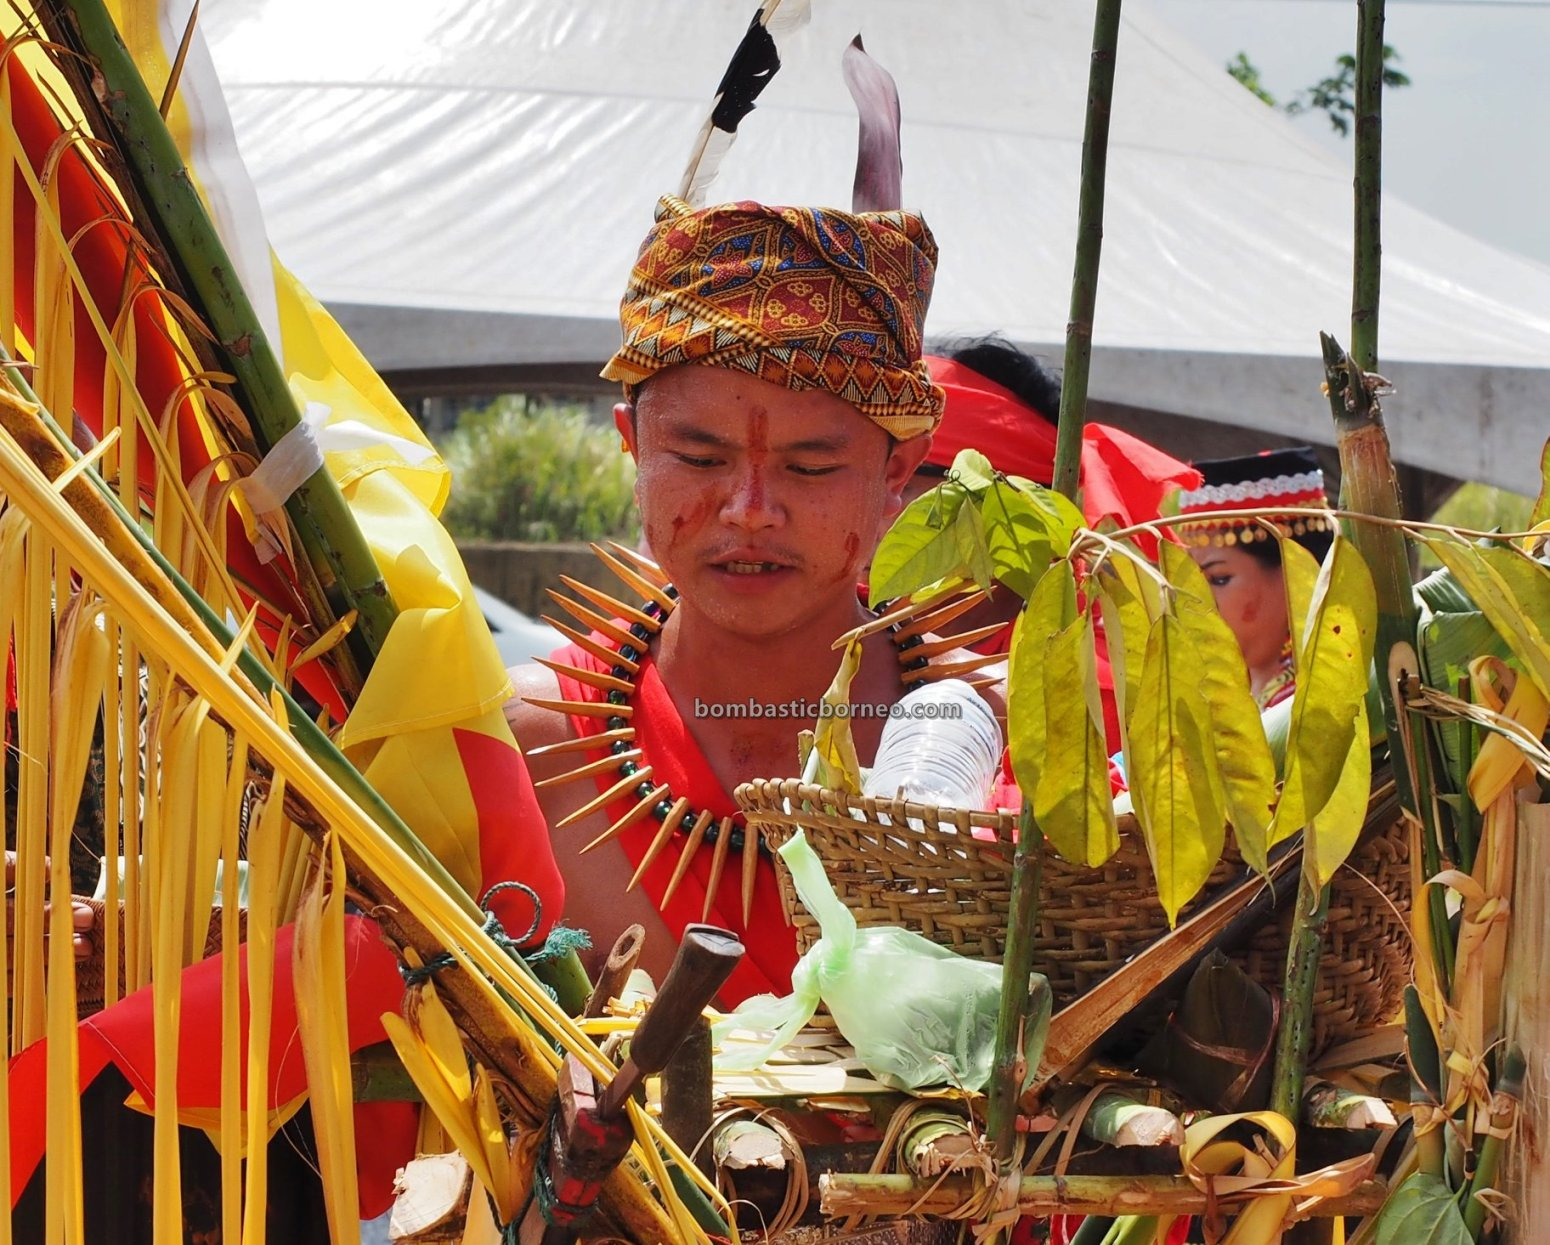 Pesta Nyarok Biya, Bengoh Dam Resettlement Scheme, authentic, culture, ritual, dayak bidayuh, tribal, tribe, indigenous, Kampung Gumbang, Borneo, travel guide, cross border, 婆罗洲比达友文化, 古晋砂拉越原住民